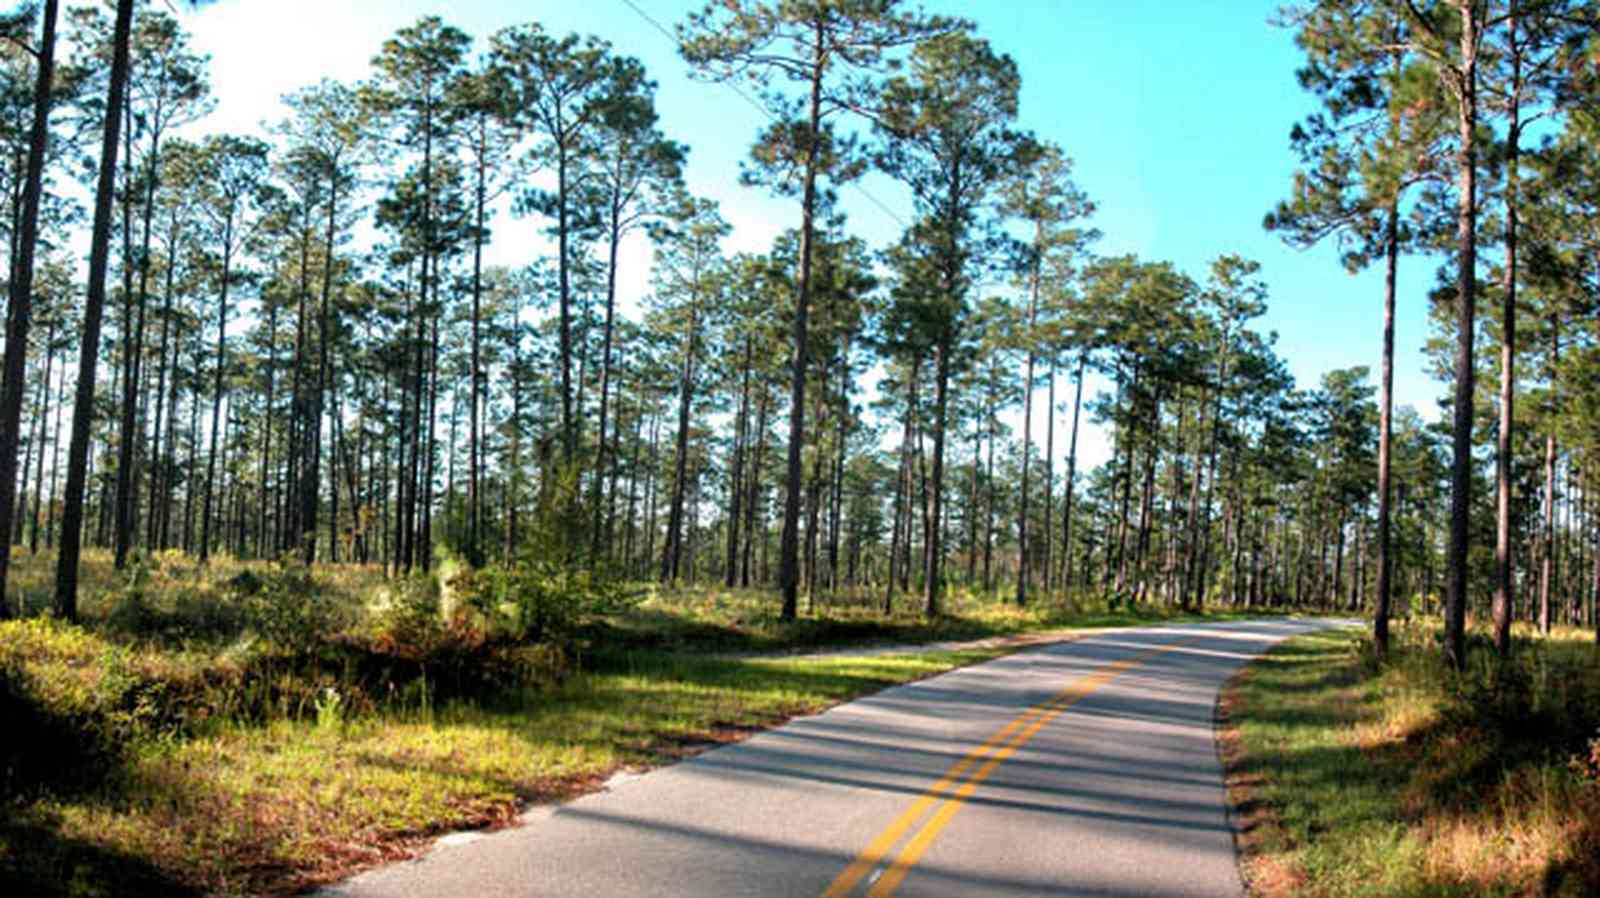 Blackwater-River-State-Park:-Pine-Forest_12.jpg:  forest, county road, long-leaf pine trees, heart pine, bracken fern, wire grass